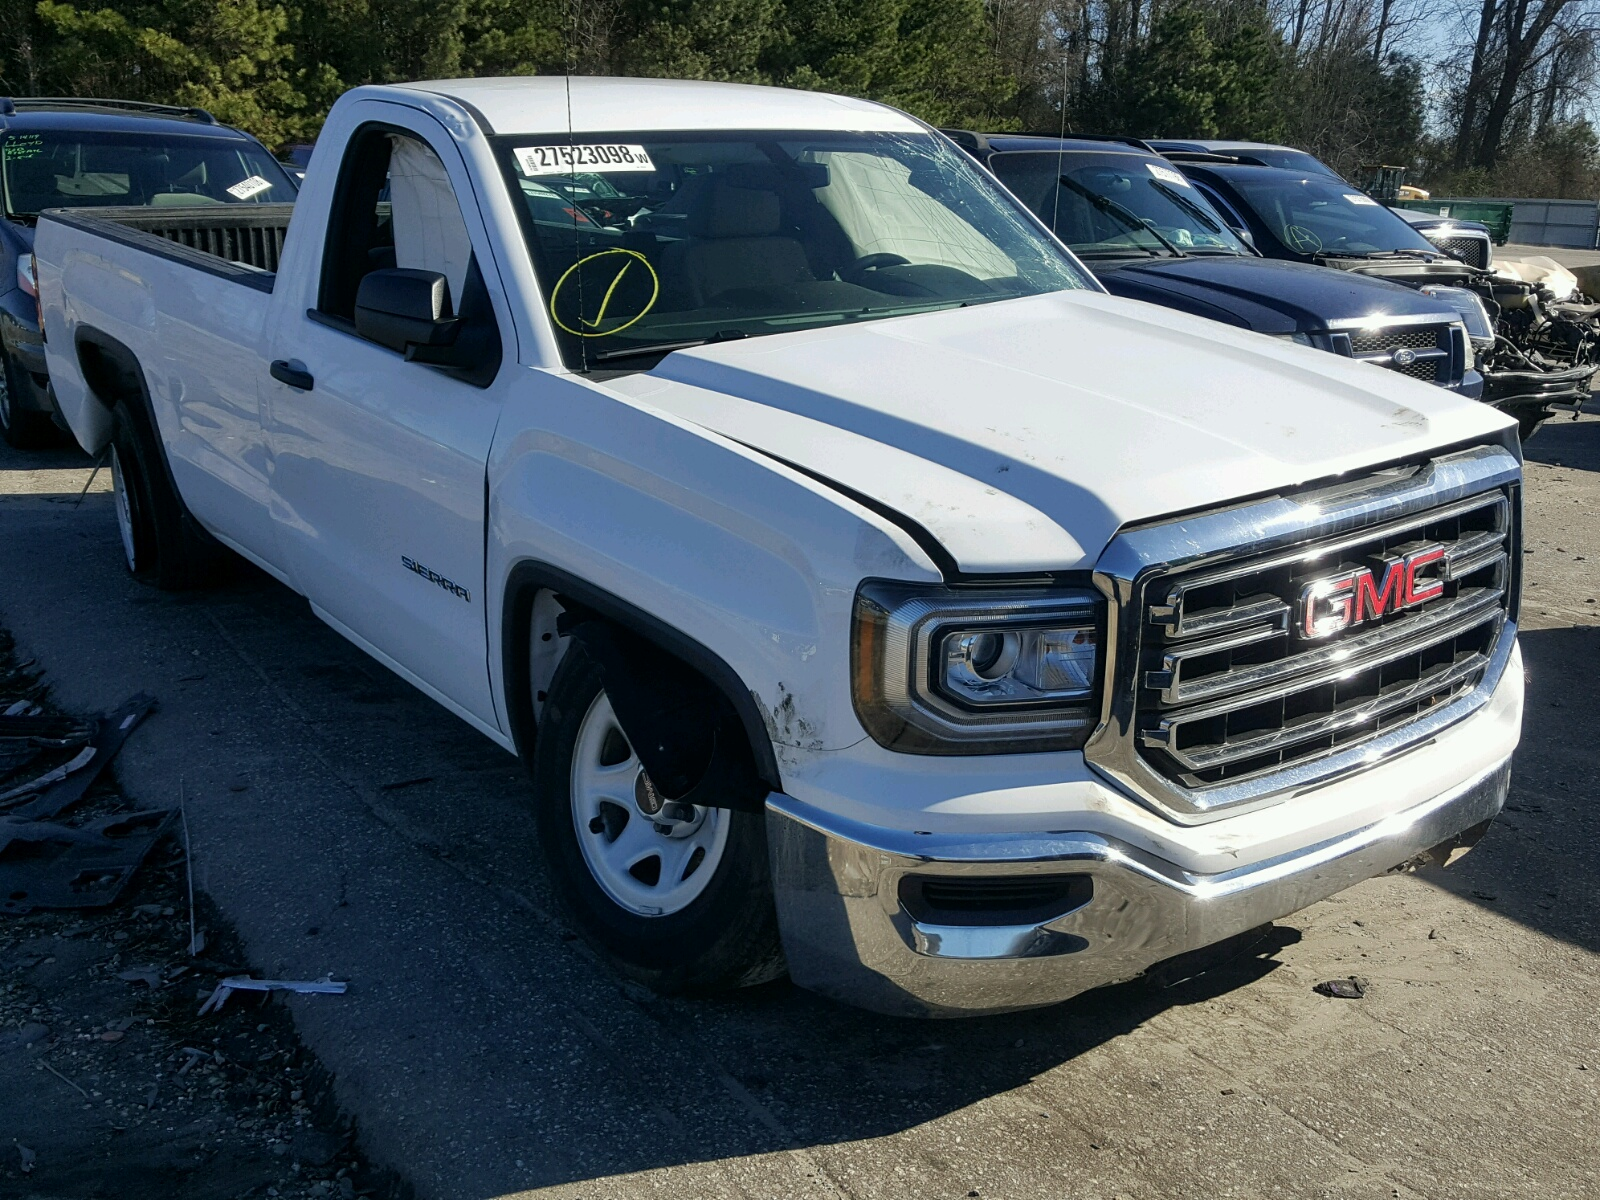 trucks nc tar chevrolet roxboro for dealer used heel buick truck sale gmc oxford chevy in new durham and